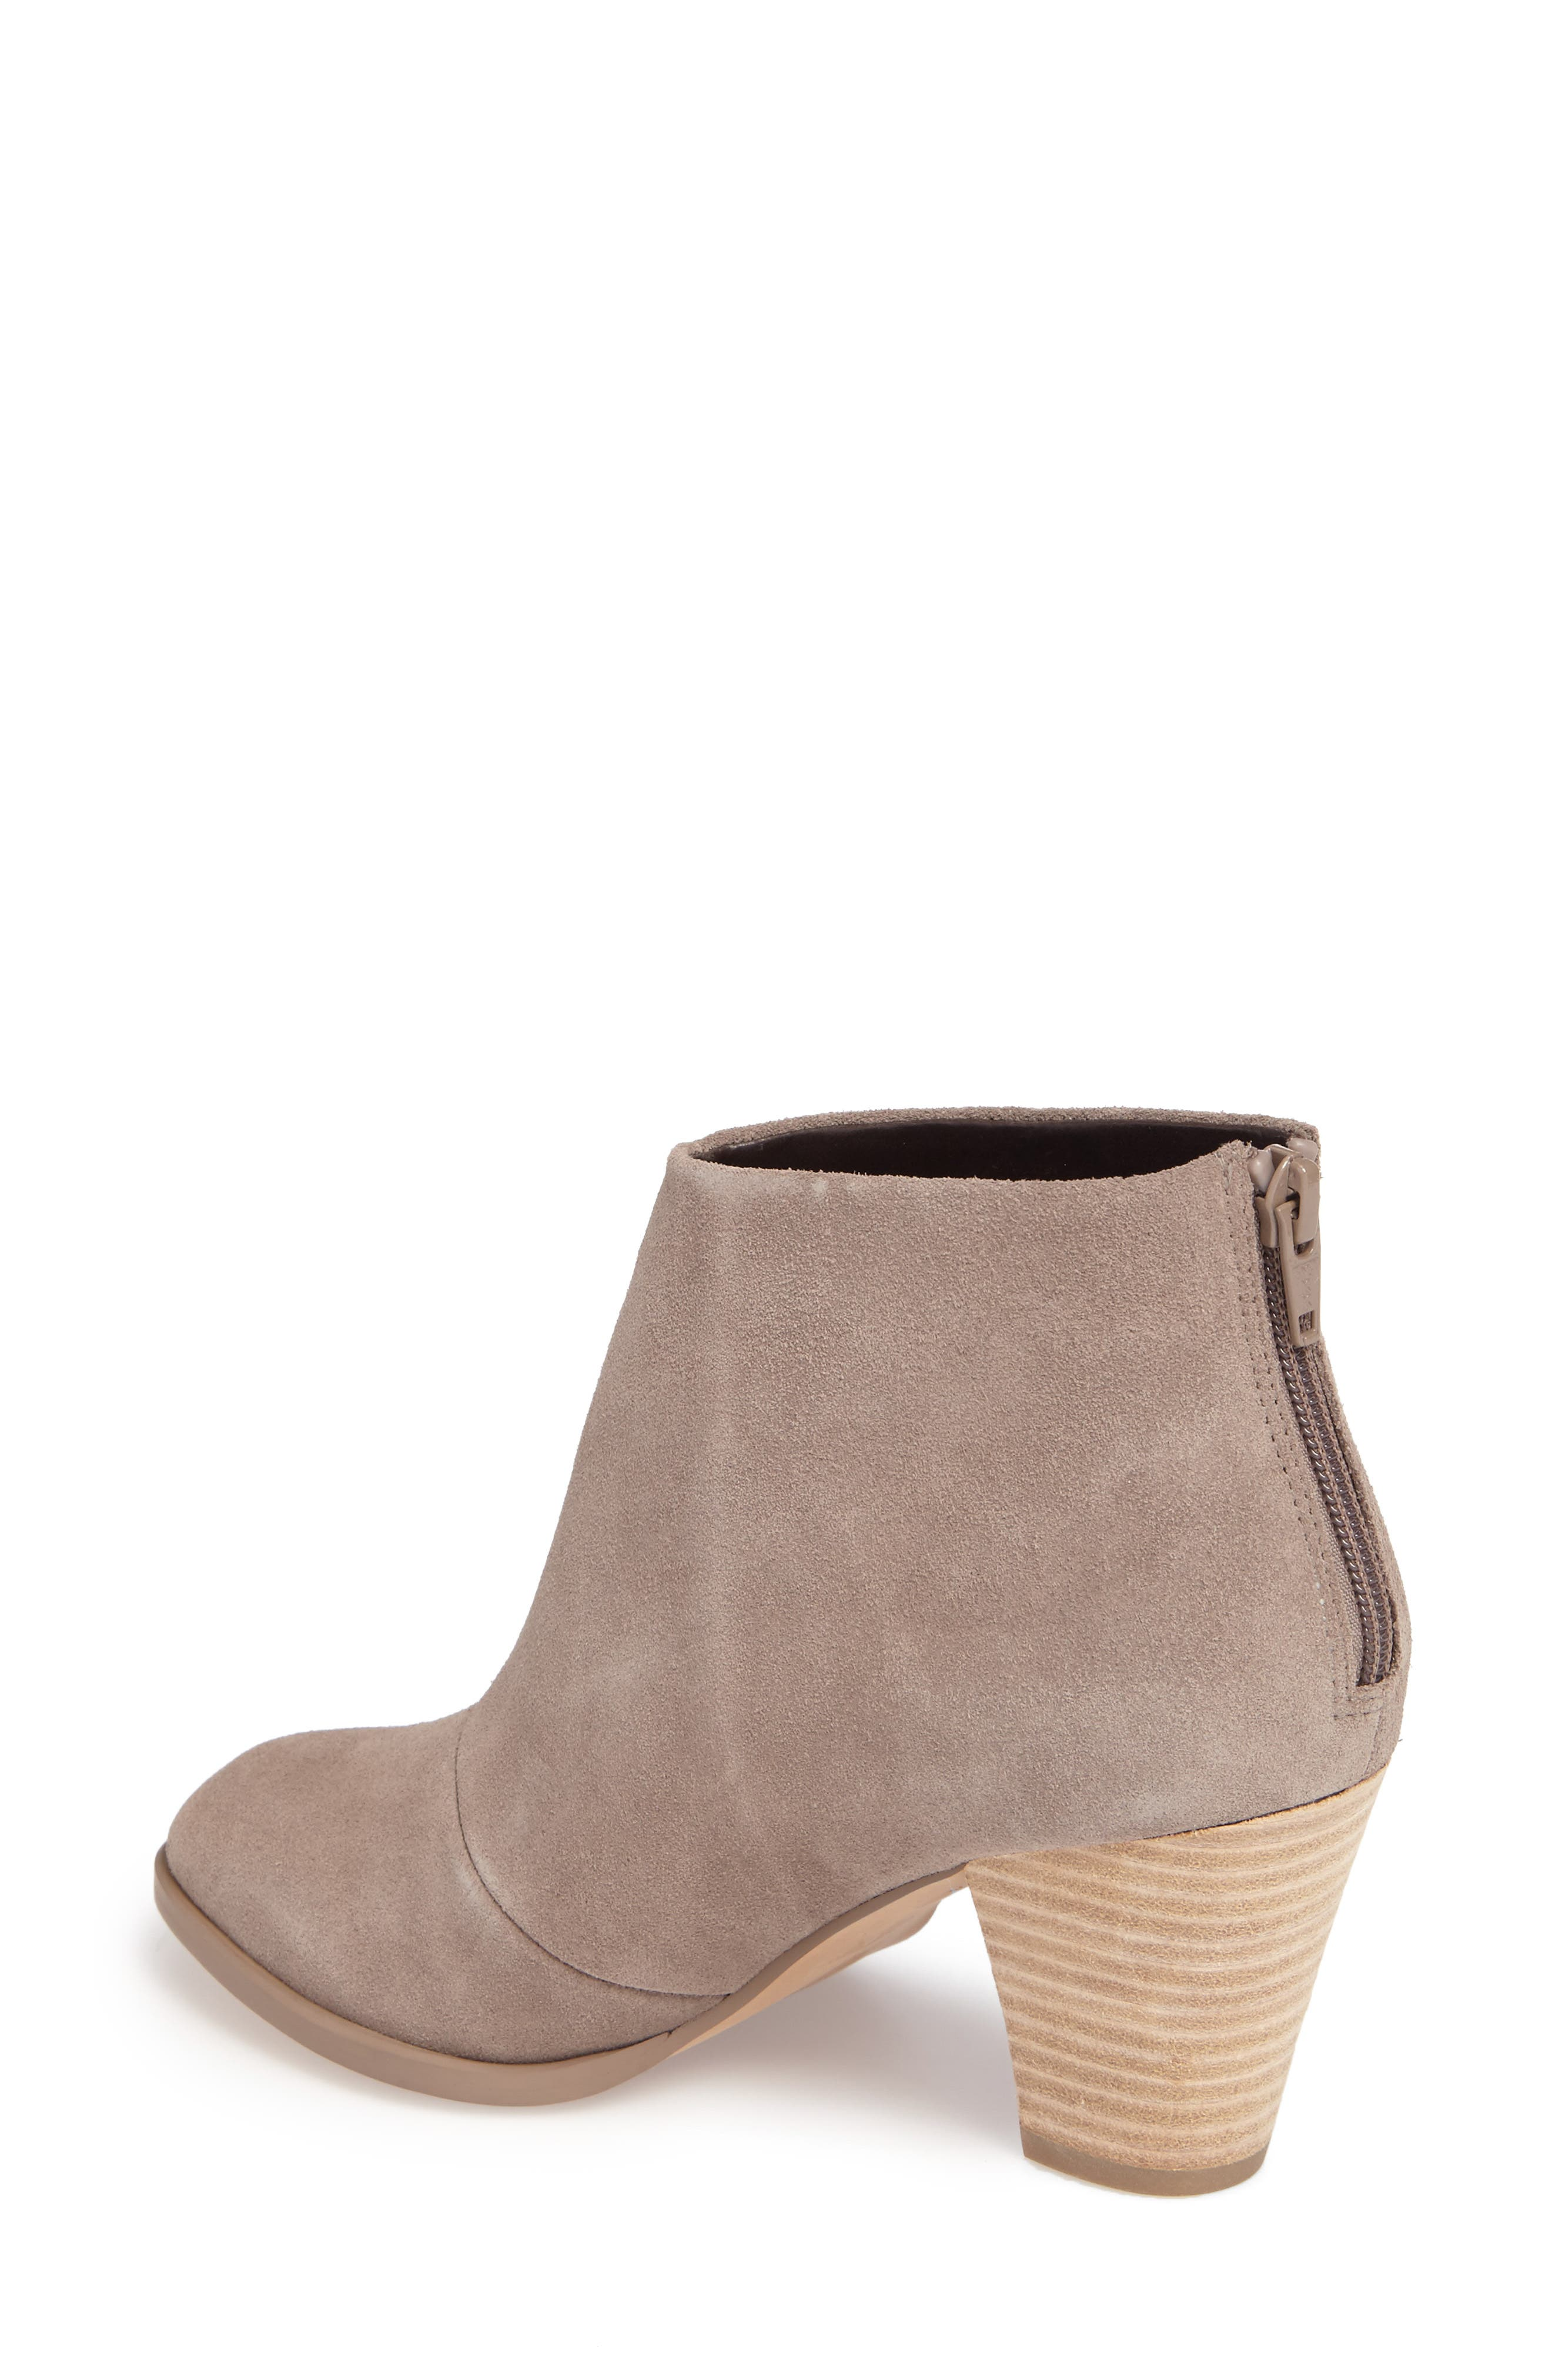 'Devyn' Ankle Bootie,                             Alternate thumbnail 2, color,                             020